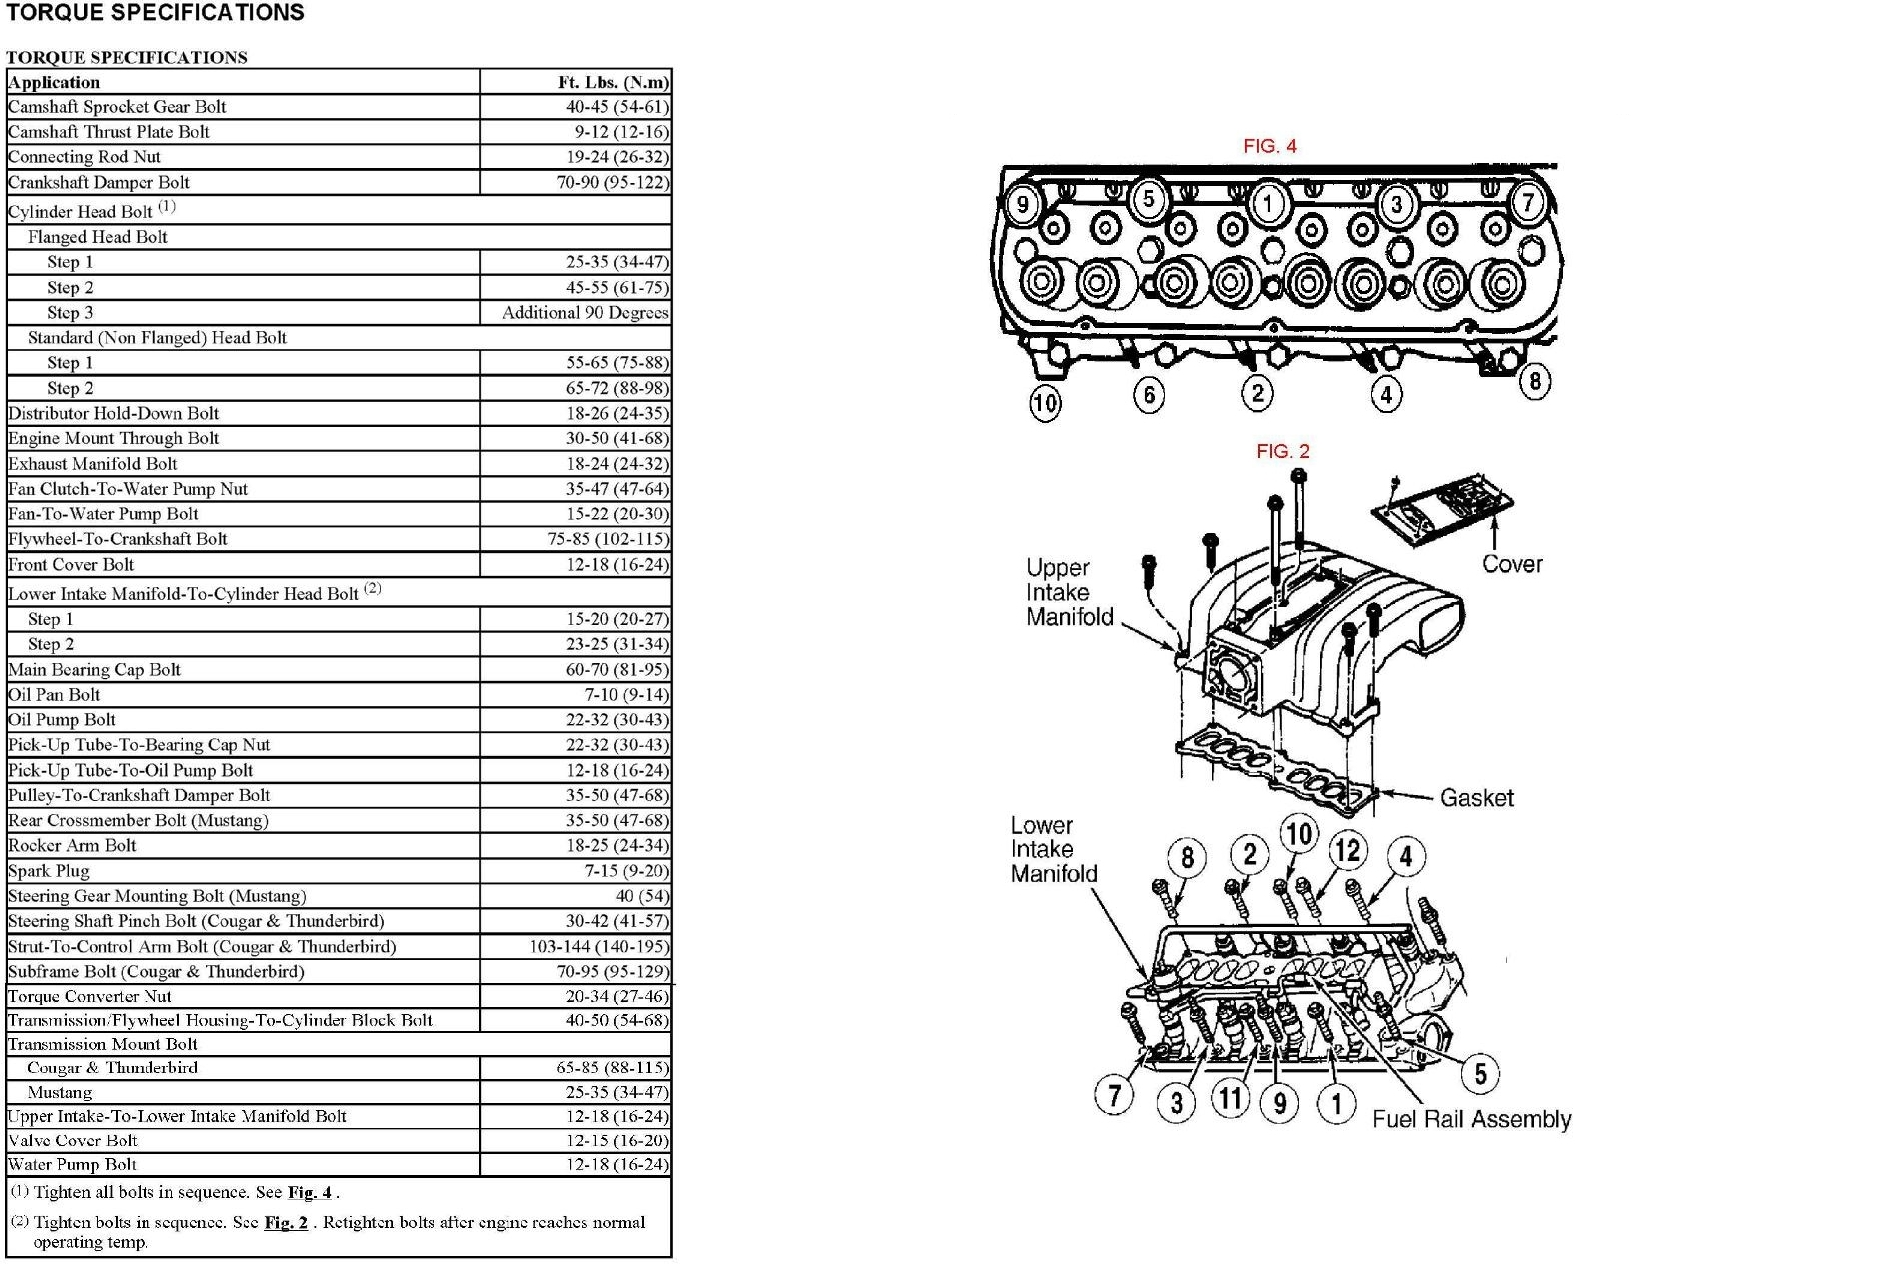 Foxbody Mustang Info Specs furthermore Showthread also 2003 Vw Golf 1 8t Cooling System Diagram together with 5 besides Wiring Harness Efi. on engine cooling system flow